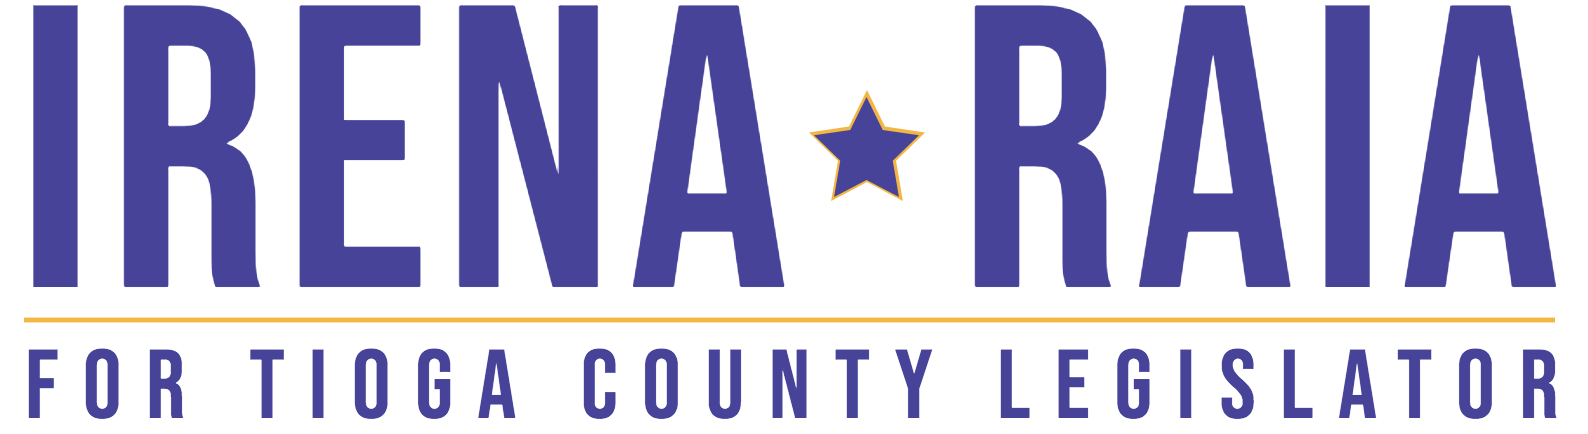 Purple words that read Irena Raia for Tioga County Legislator. There is a purple and gold star in between Irena and Raia.